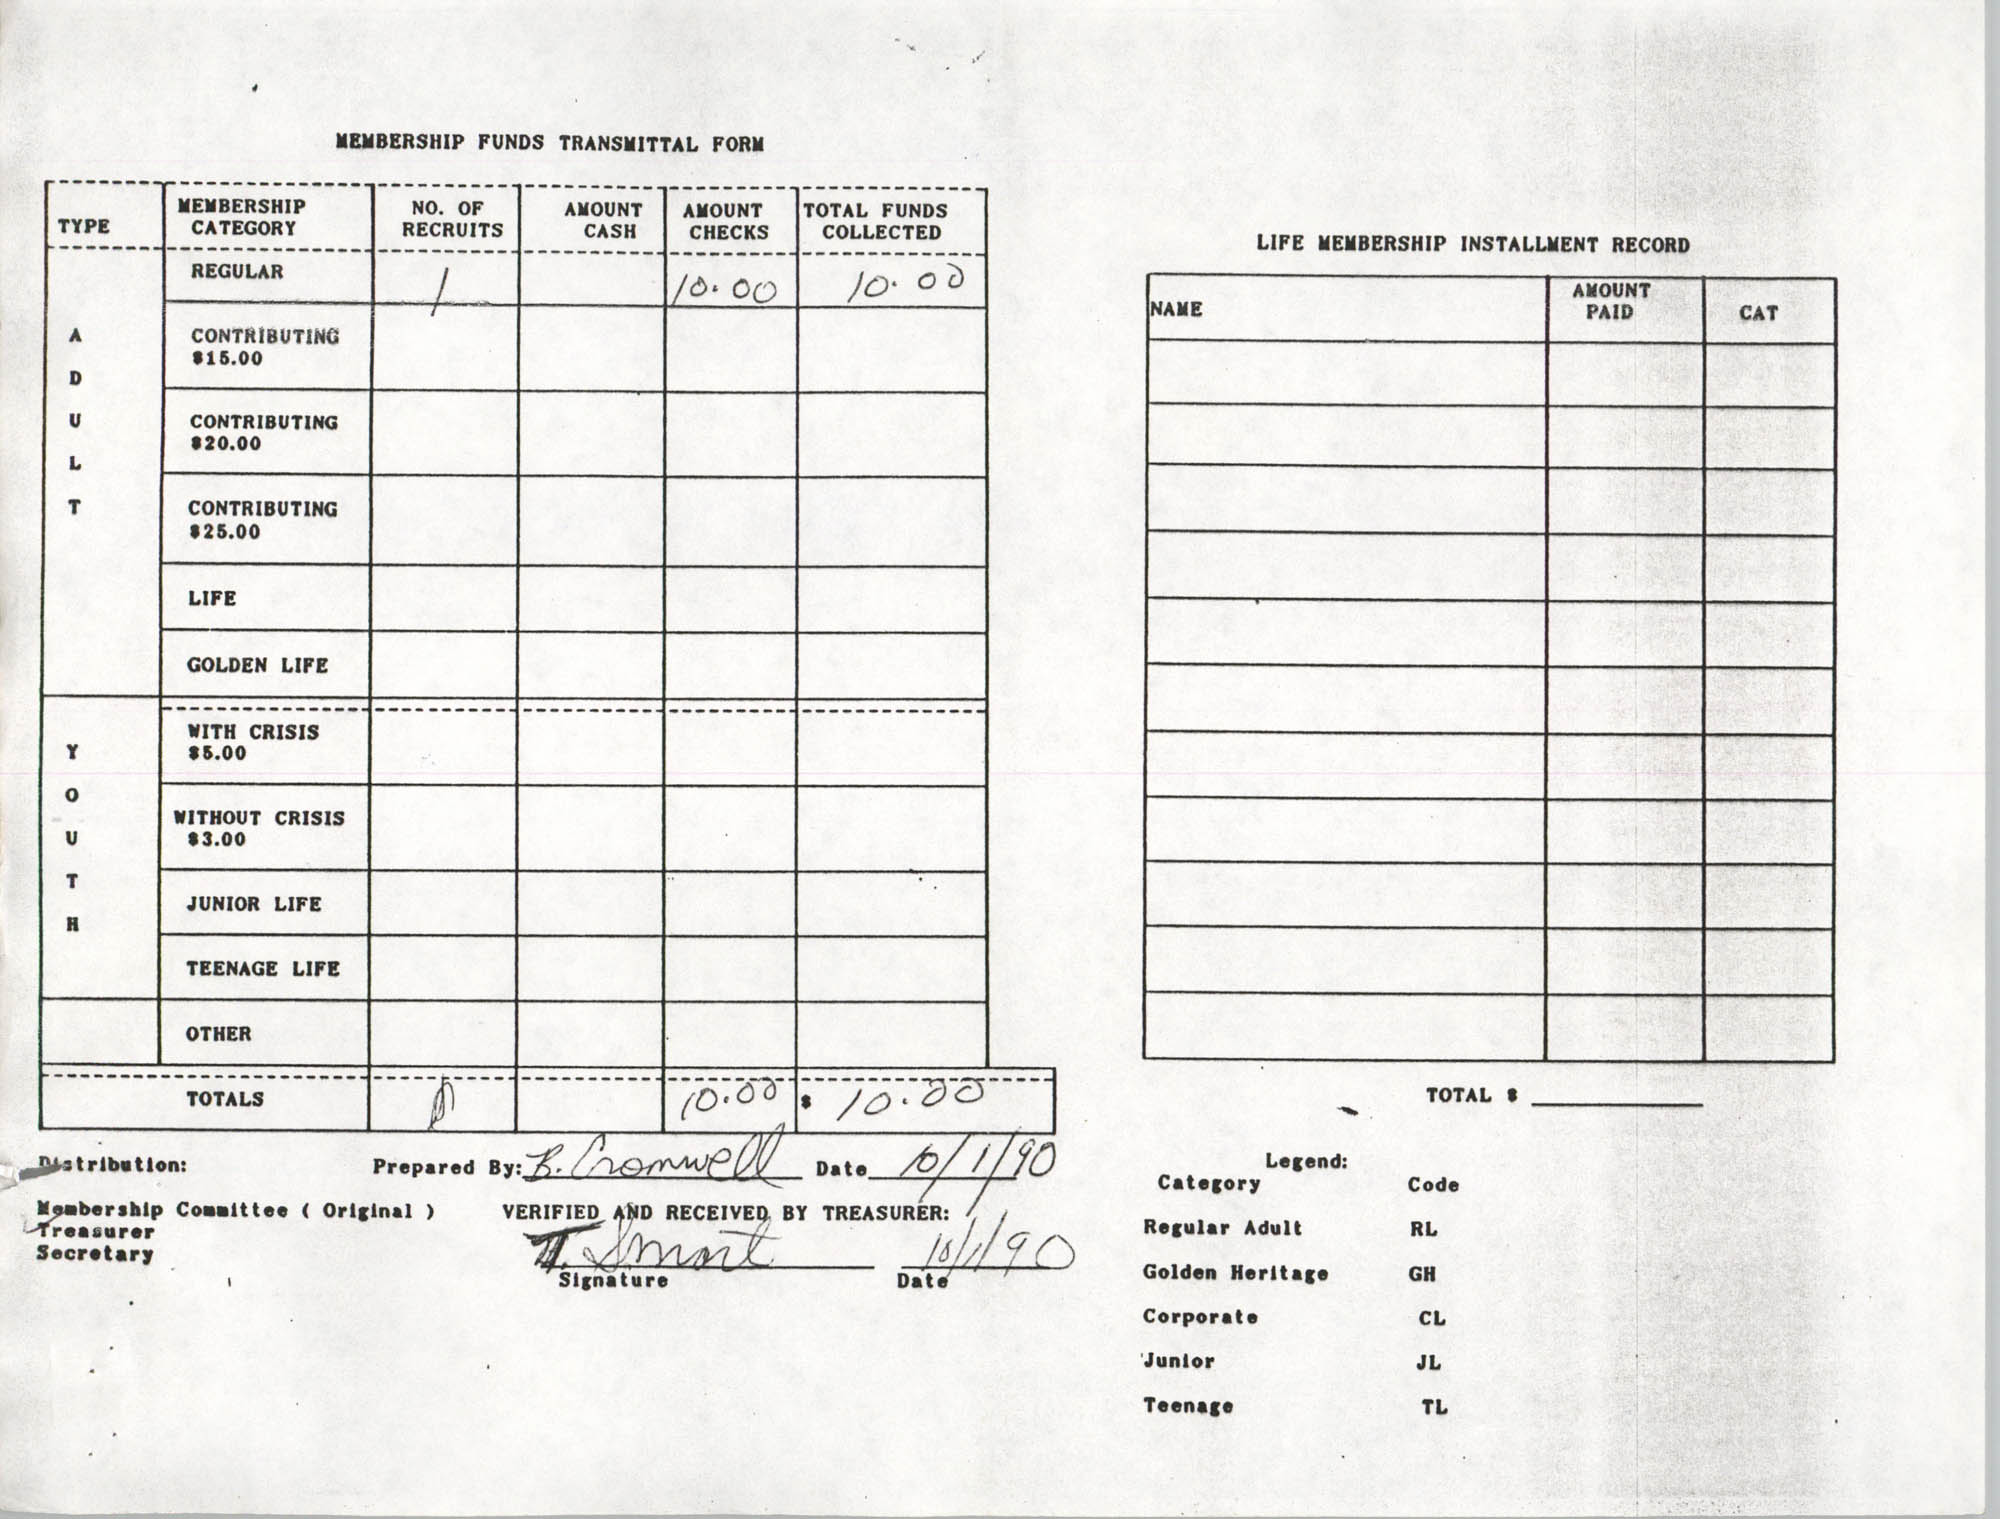 Charleston Branch of the NAACP, Funds Transmittal Forms, October 1990, Page 10